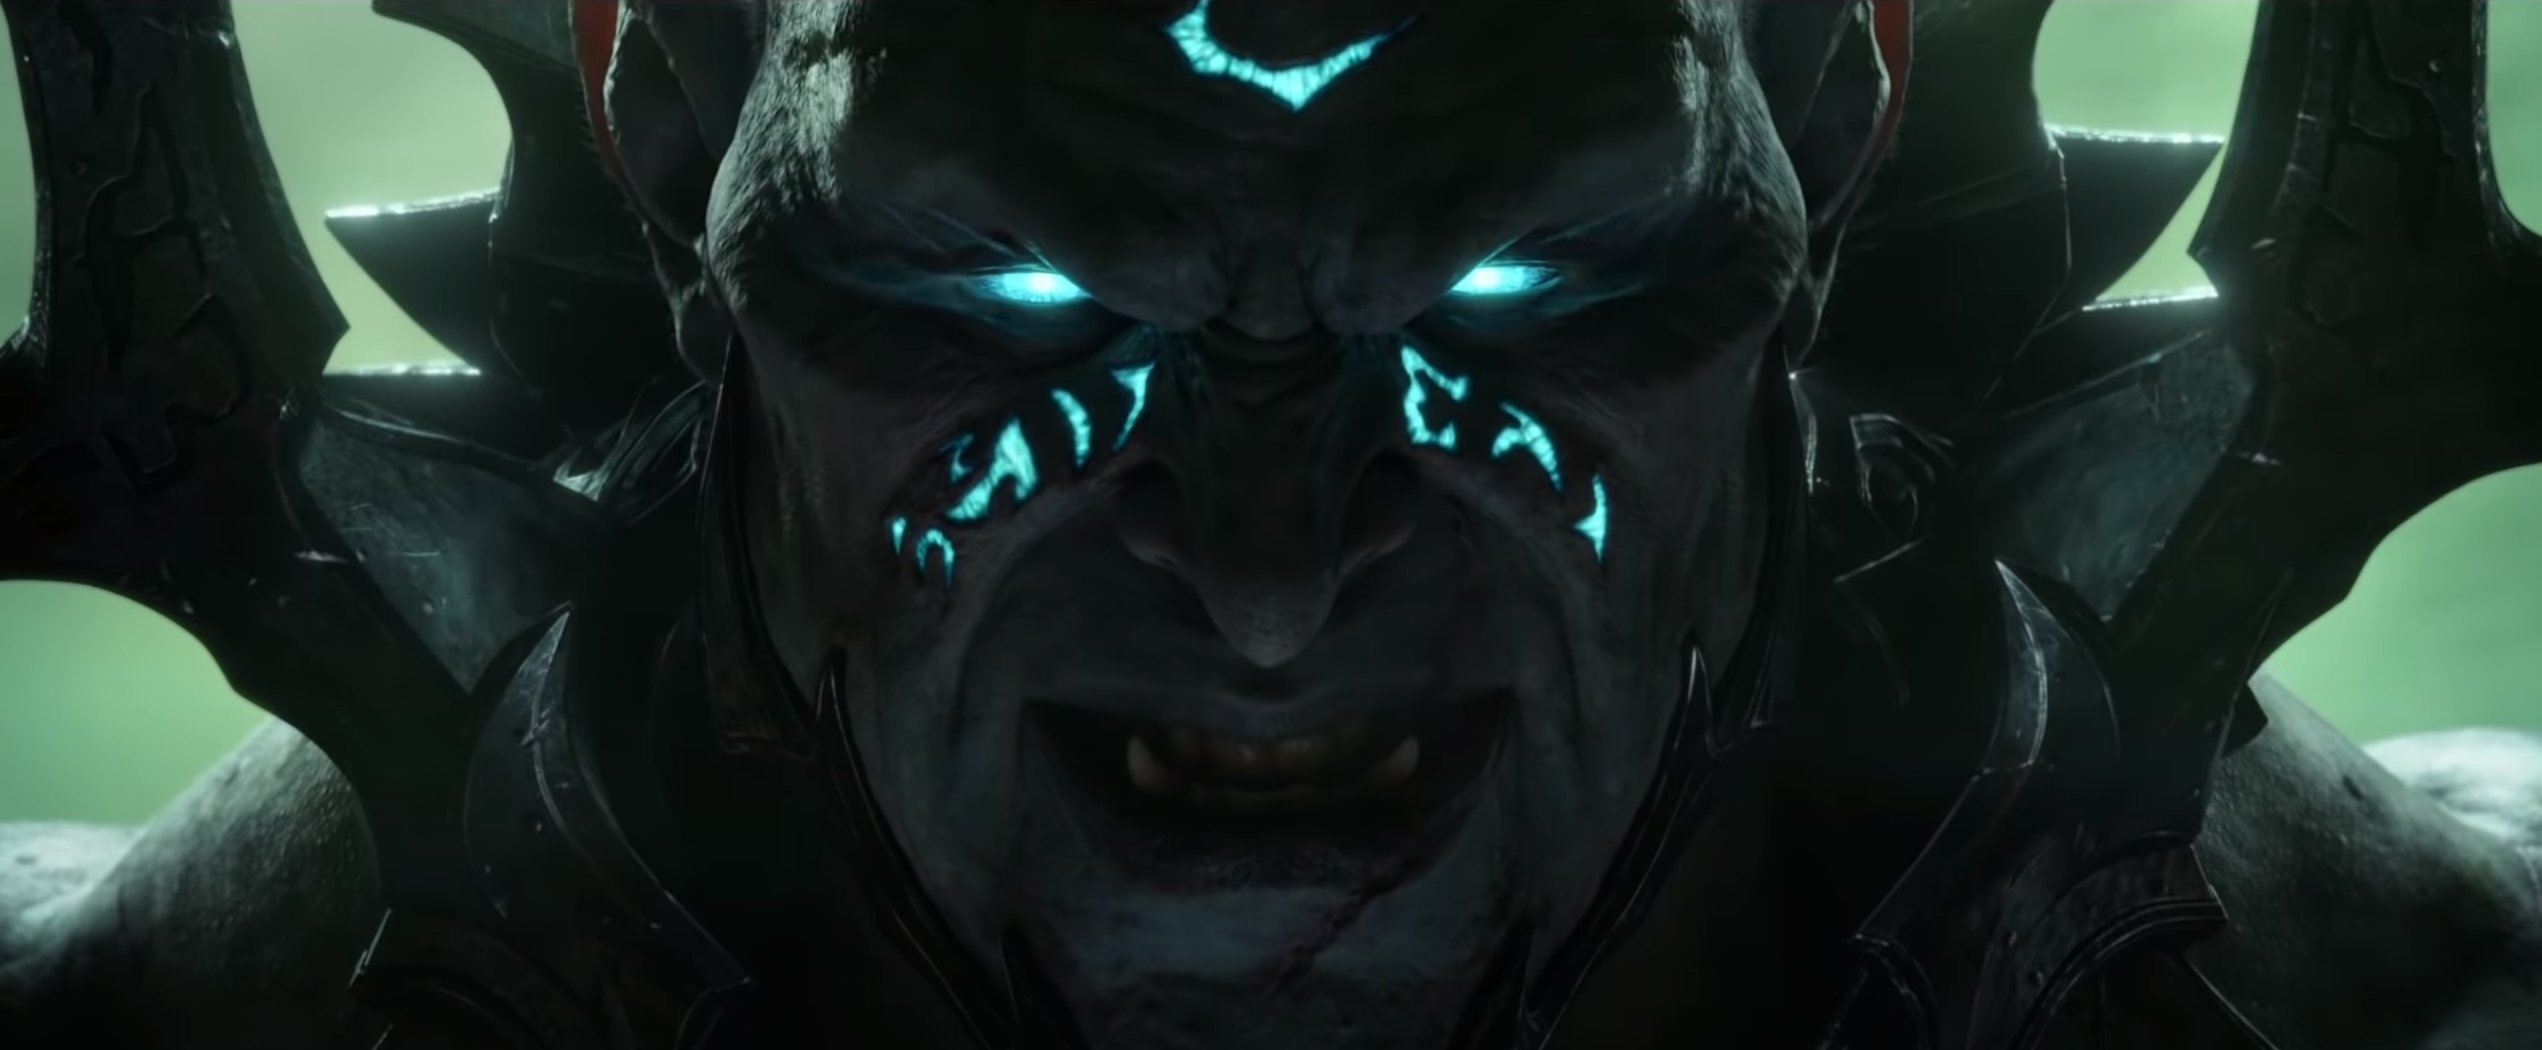 Blizzard Developers Johnny Cash And Ely Cannon Hint That The Jailer May Not Be Final Villain Of World Of Warcraft: Shadowlands